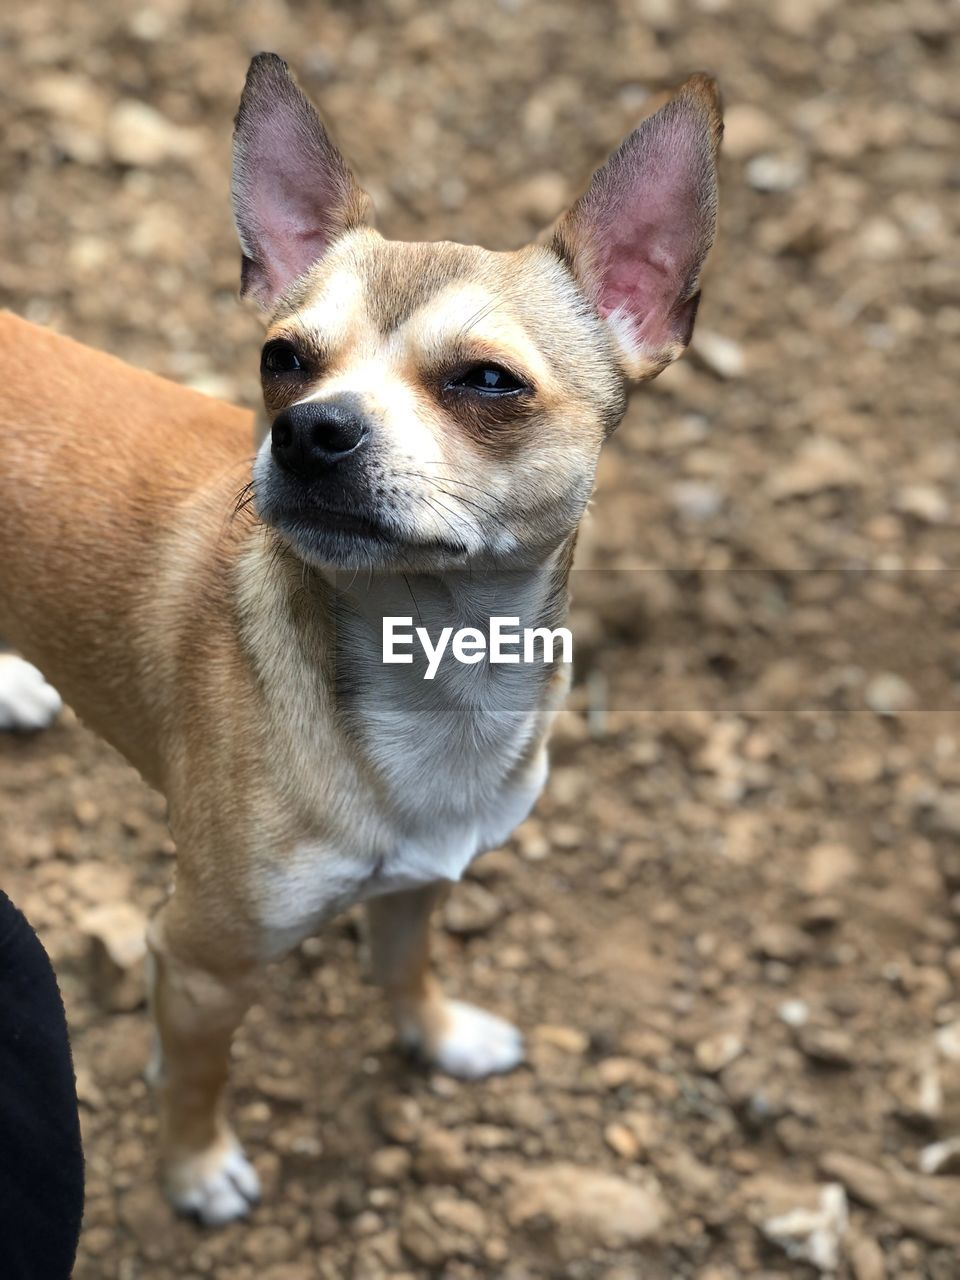 mammal, domestic animals, one animal, animal themes, animal, domestic, pets, dog, canine, vertebrate, portrait, land, looking at camera, field, no people, focus on foreground, standing, day, animal body part, sunlight, animal head, small, chihuahua - dog